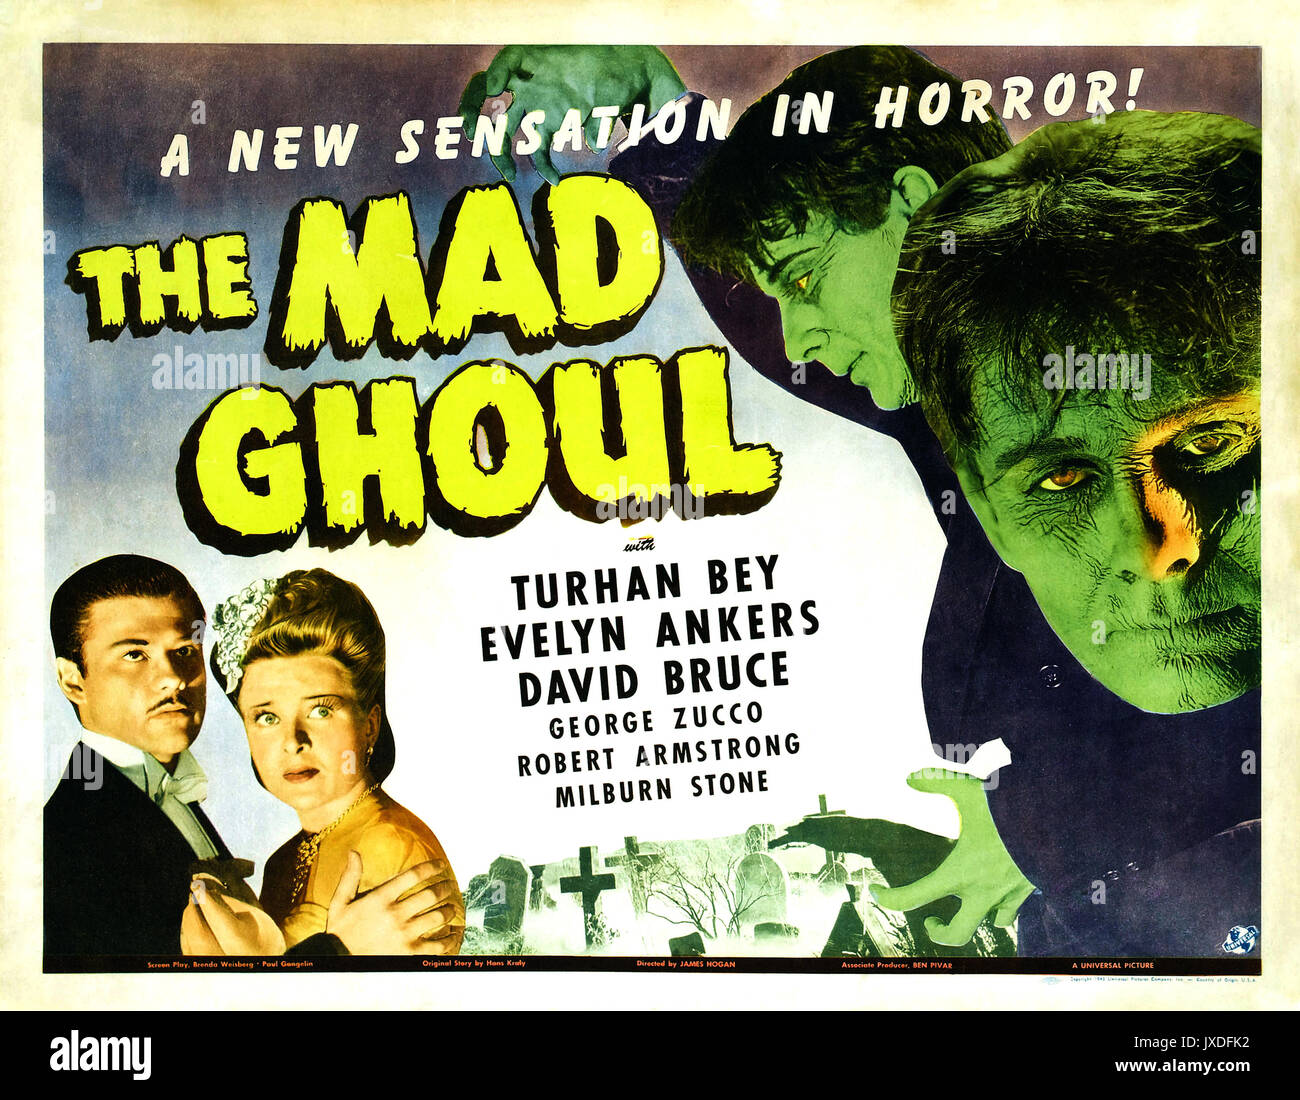 THE MAD GHOUL 1943 Universal Pictures sci-fi film - Stock Image